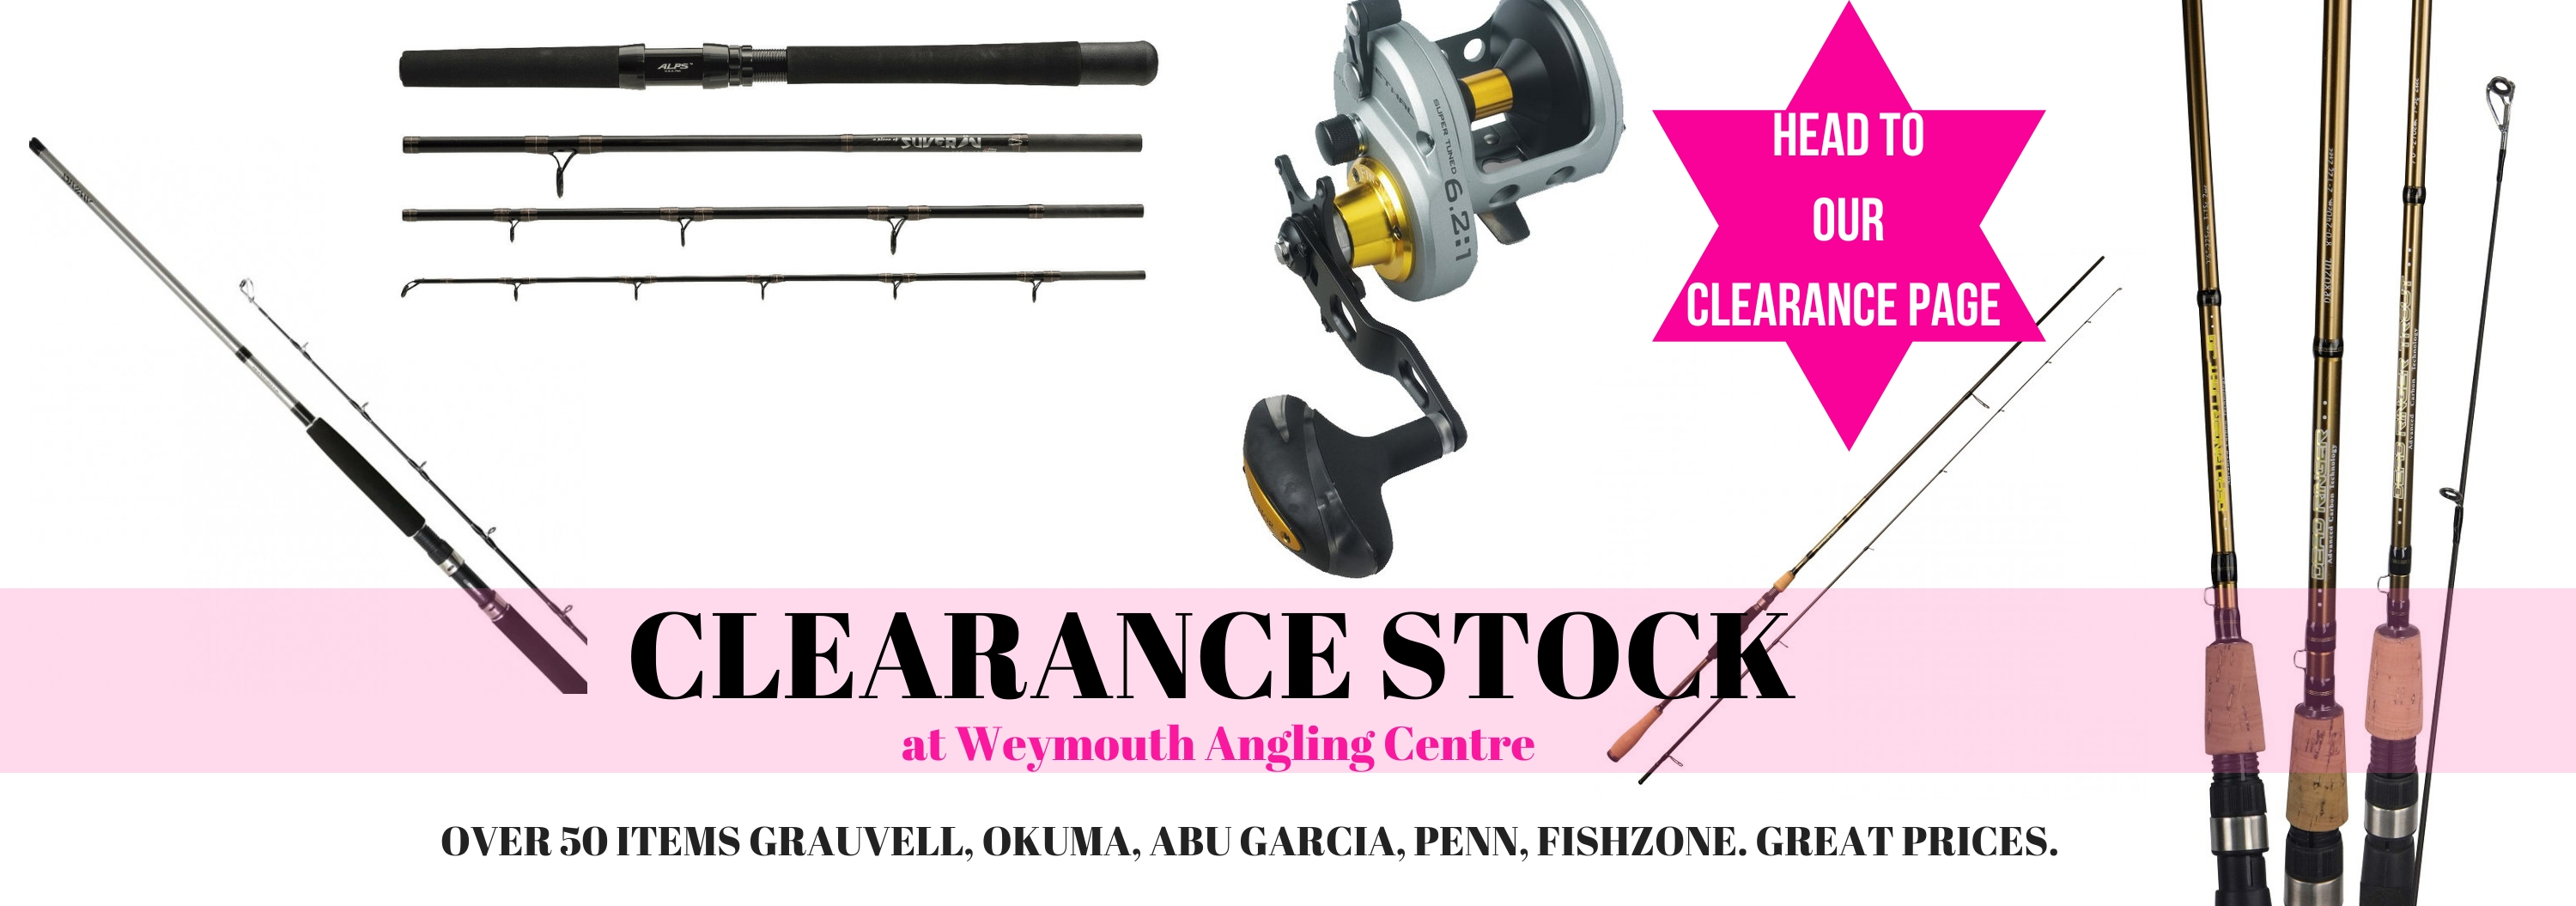 Clearance range over 50 products reels, rods, clothing etc.